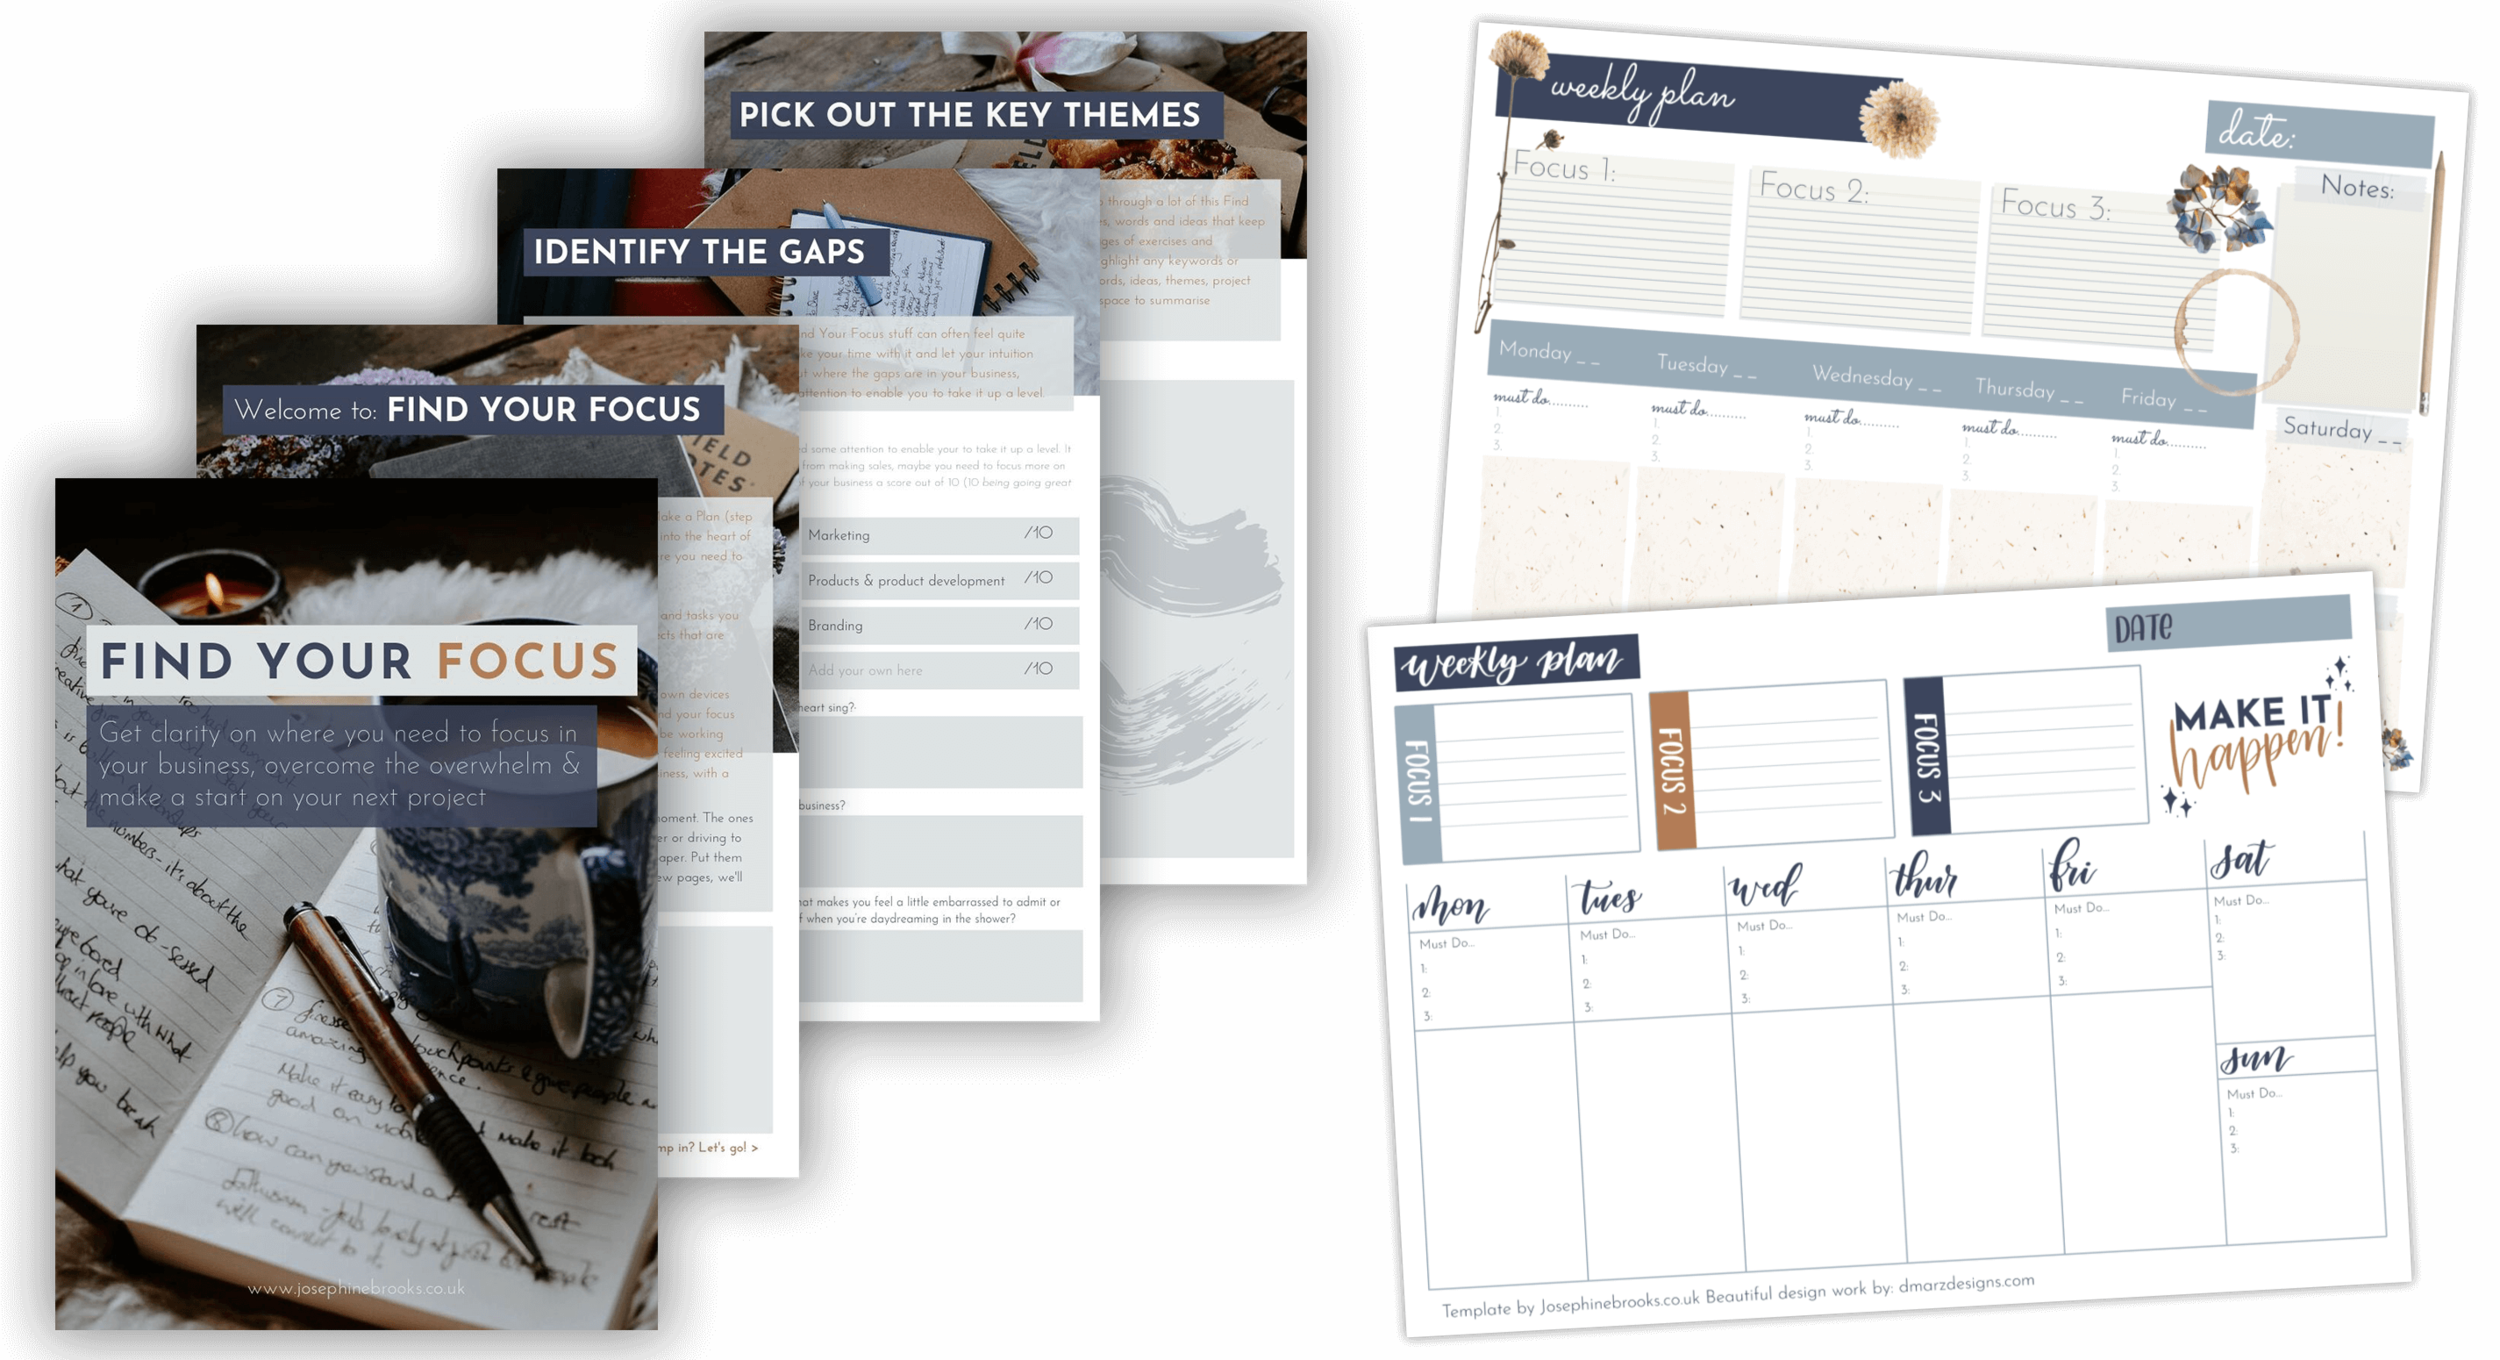 Find Your Focus - Find clarity, overcome the overwhelm and feel that excitement again for your side-hustle   A workbook from Josephine Brooks